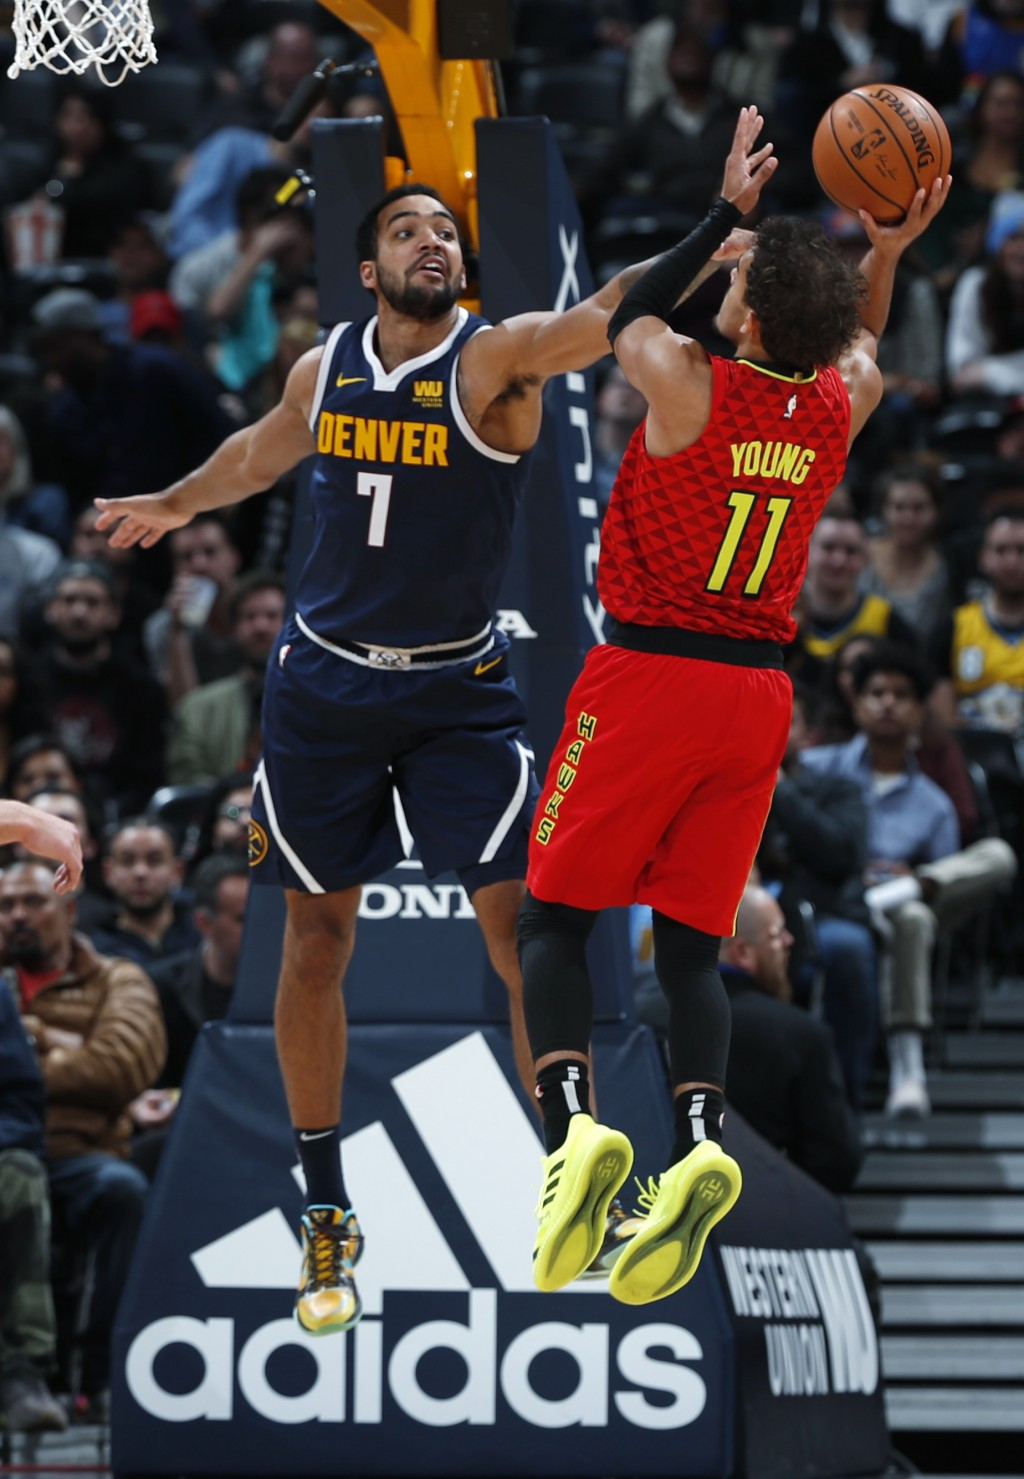 Denver Nuggets forward Trey Lyles, left, goes up to block a shot by Atlanta Hawks guard Trae Young in the second half of an NBA basketball game Thursd...